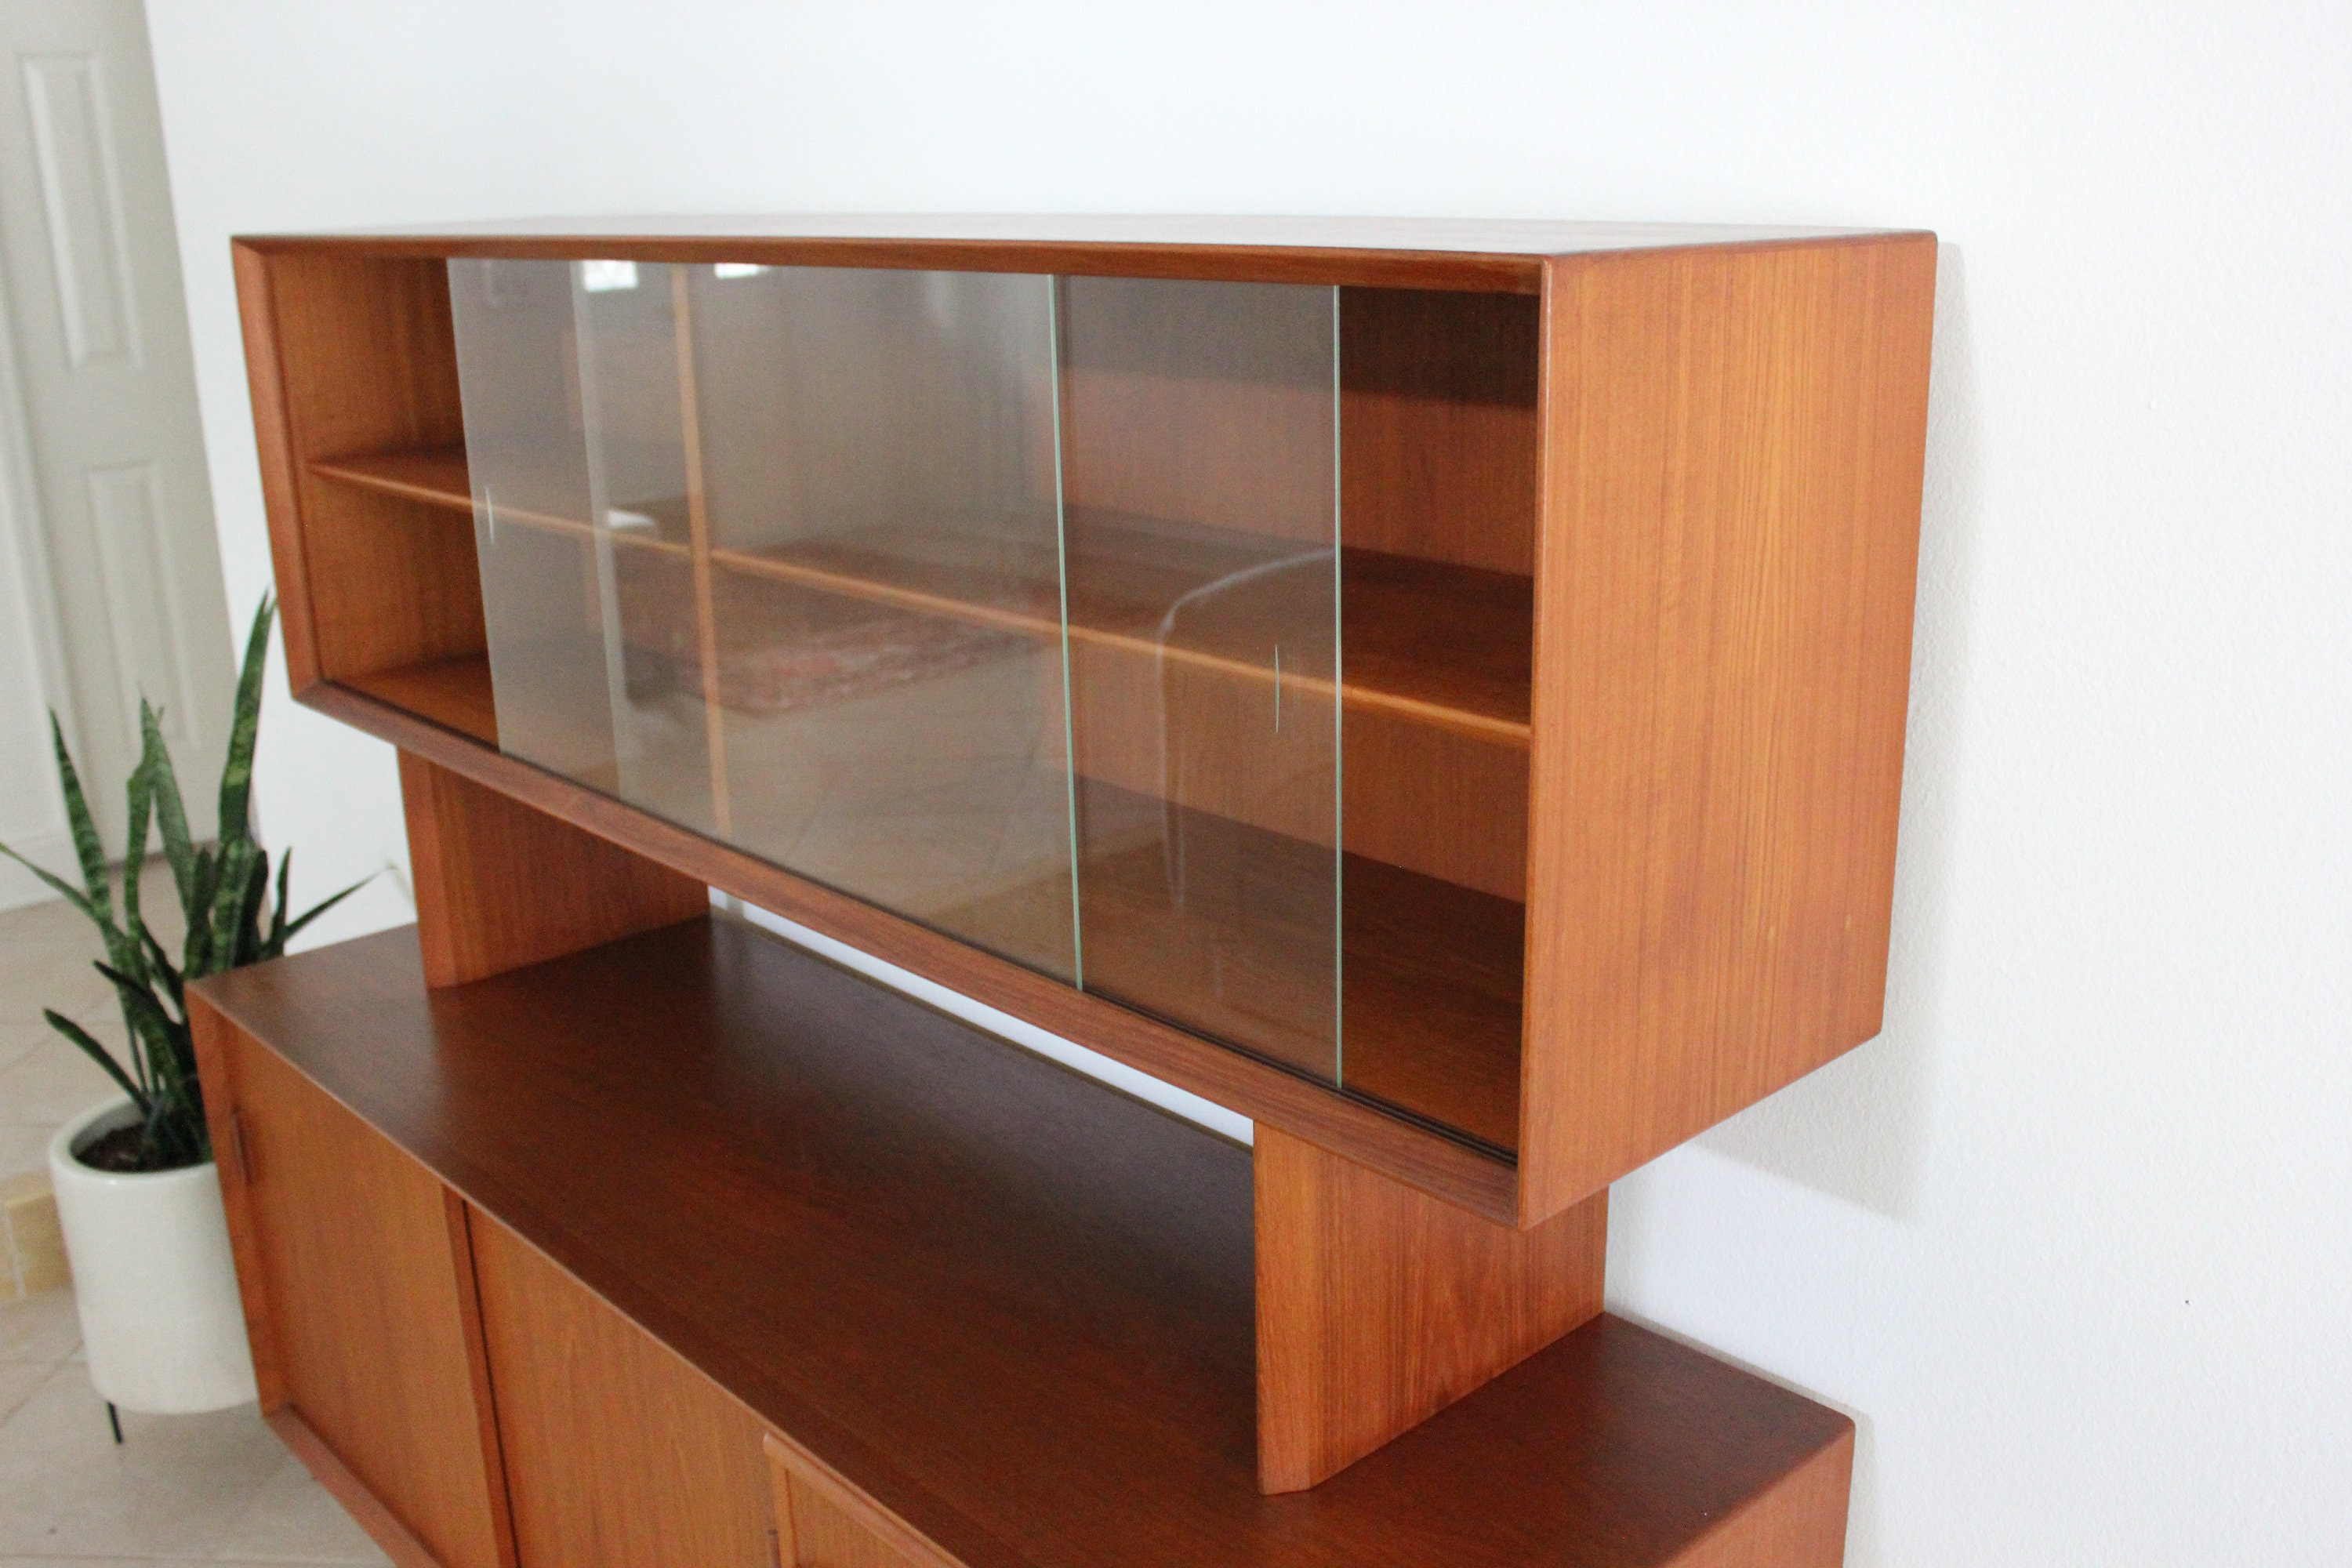 Danish Credenza Hutch : Hold for ko do not purchase danish modern teak credenza with